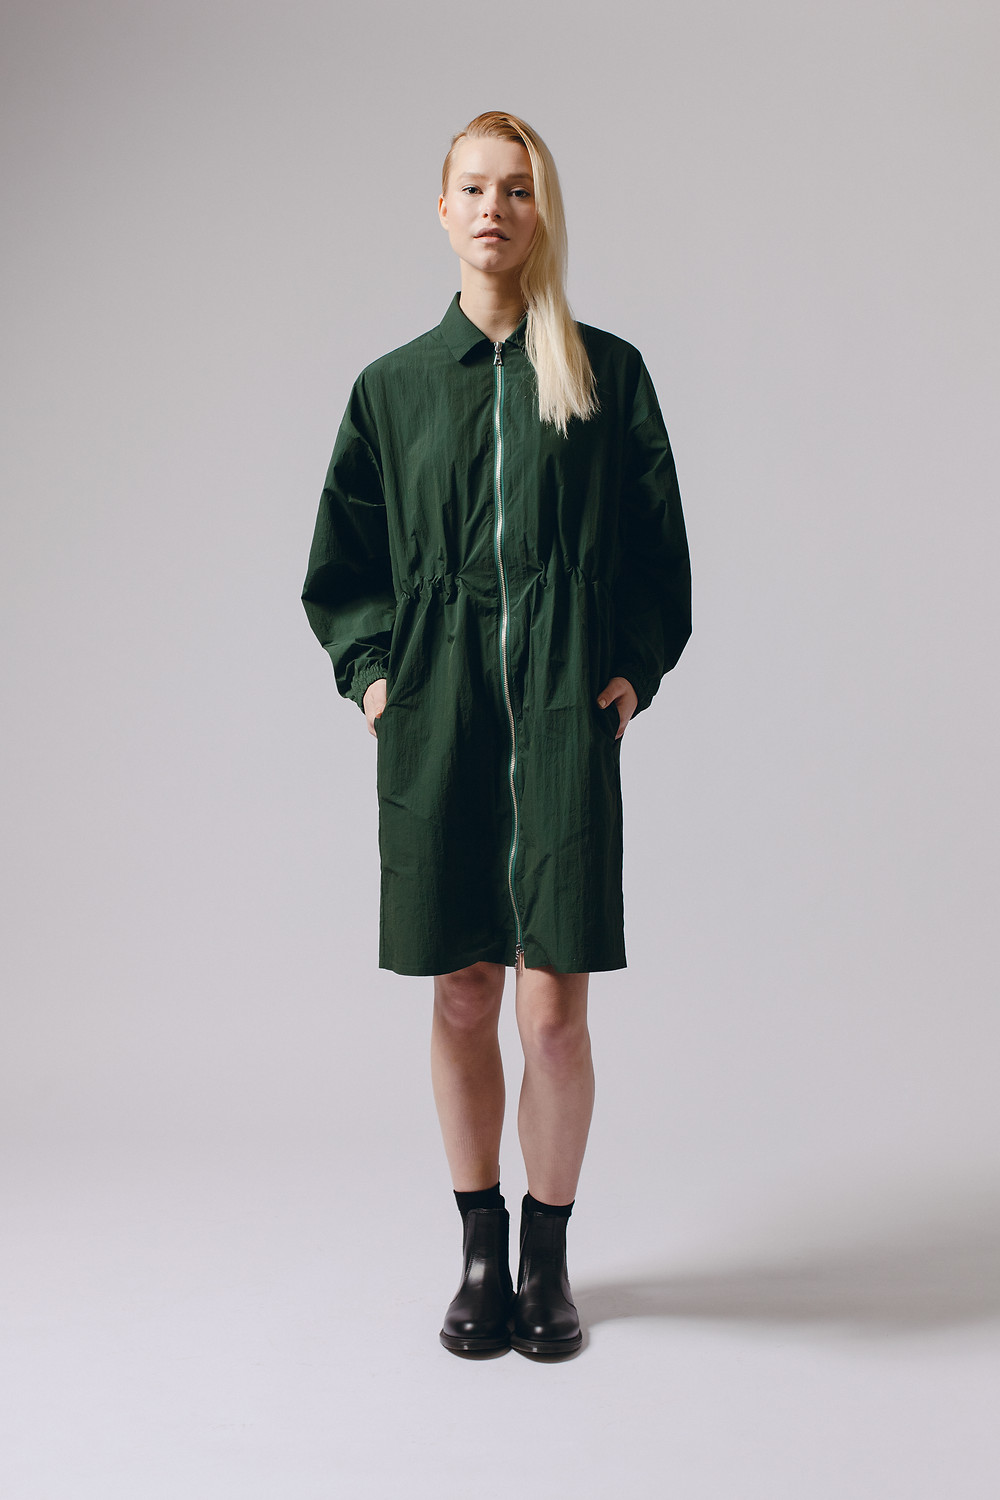 Maiden Noir, Seattle clothing brand, drops its A/W 2020 line, drawing colors, shapes, and relaxed silhouettes from the fascinating world of mycoflora, model in green dress, blonde hair, black boots